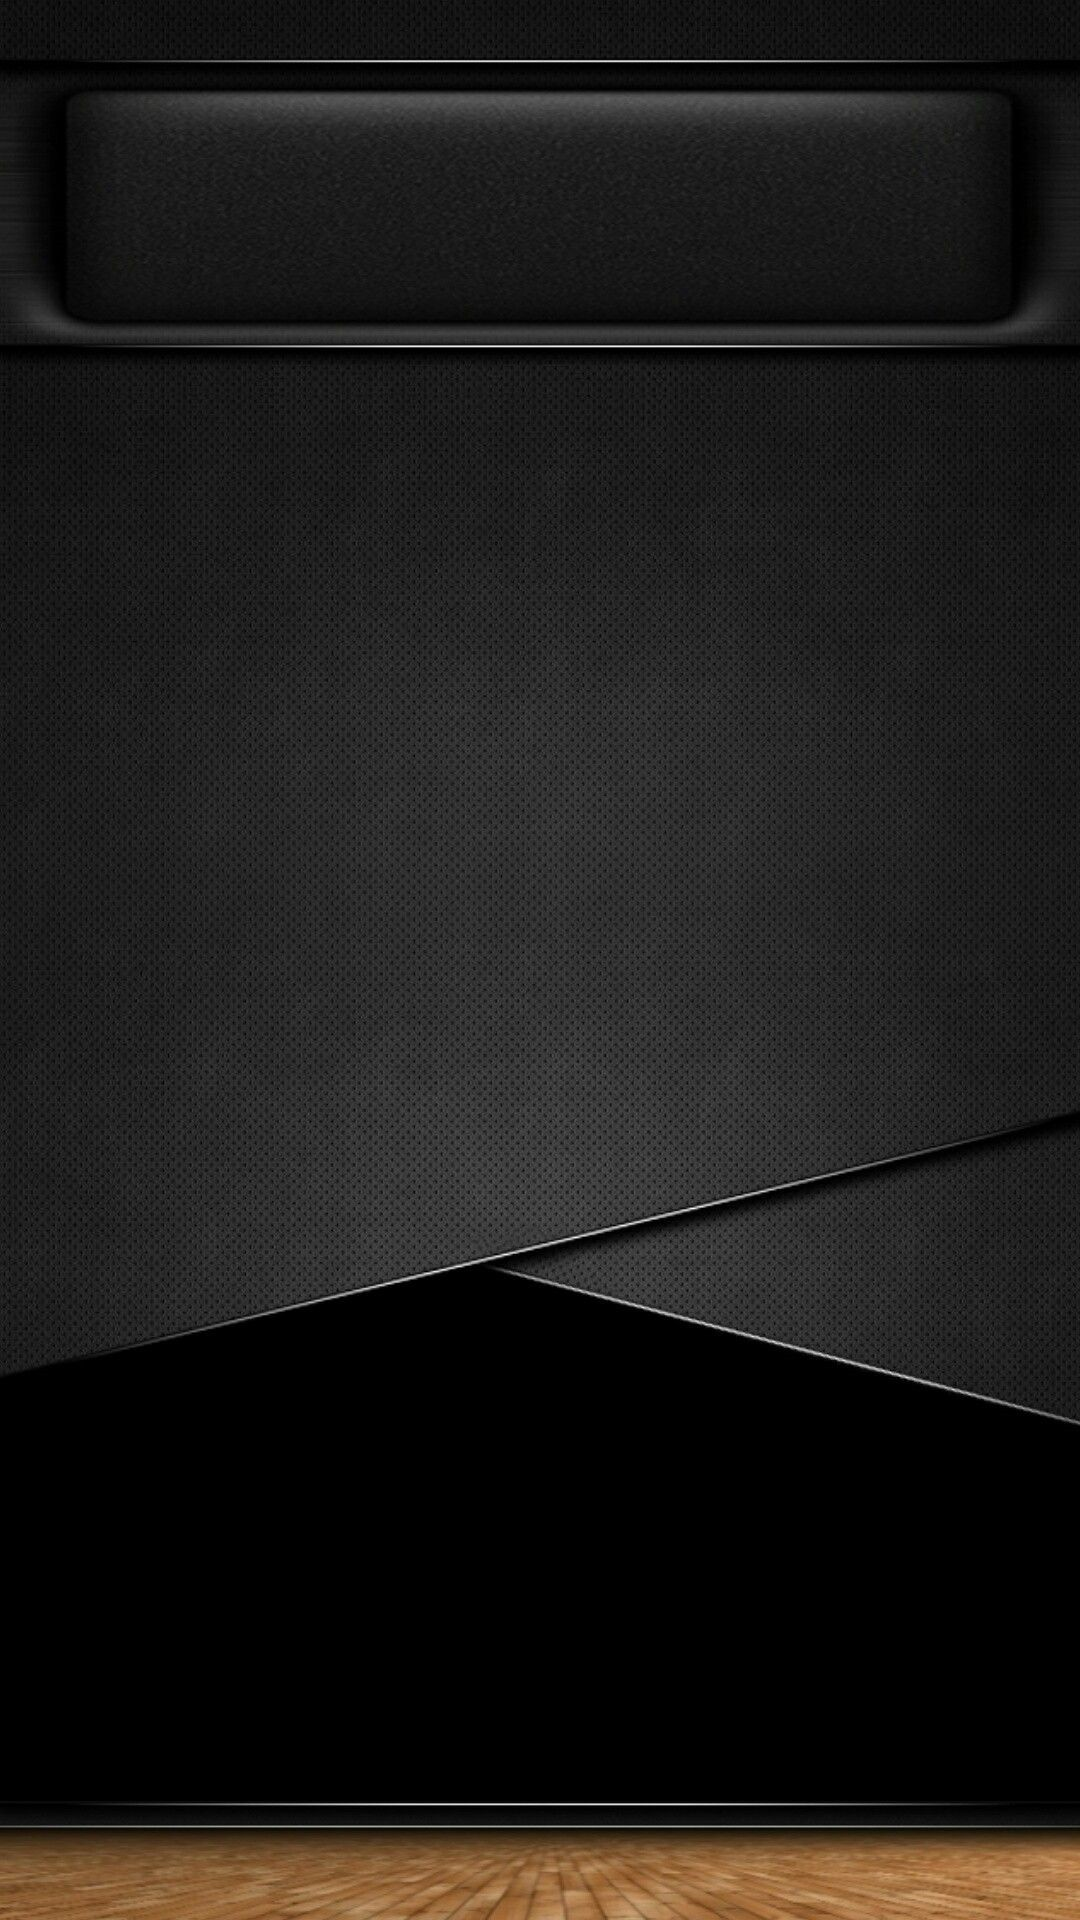 Black hd wallpaper for iphone